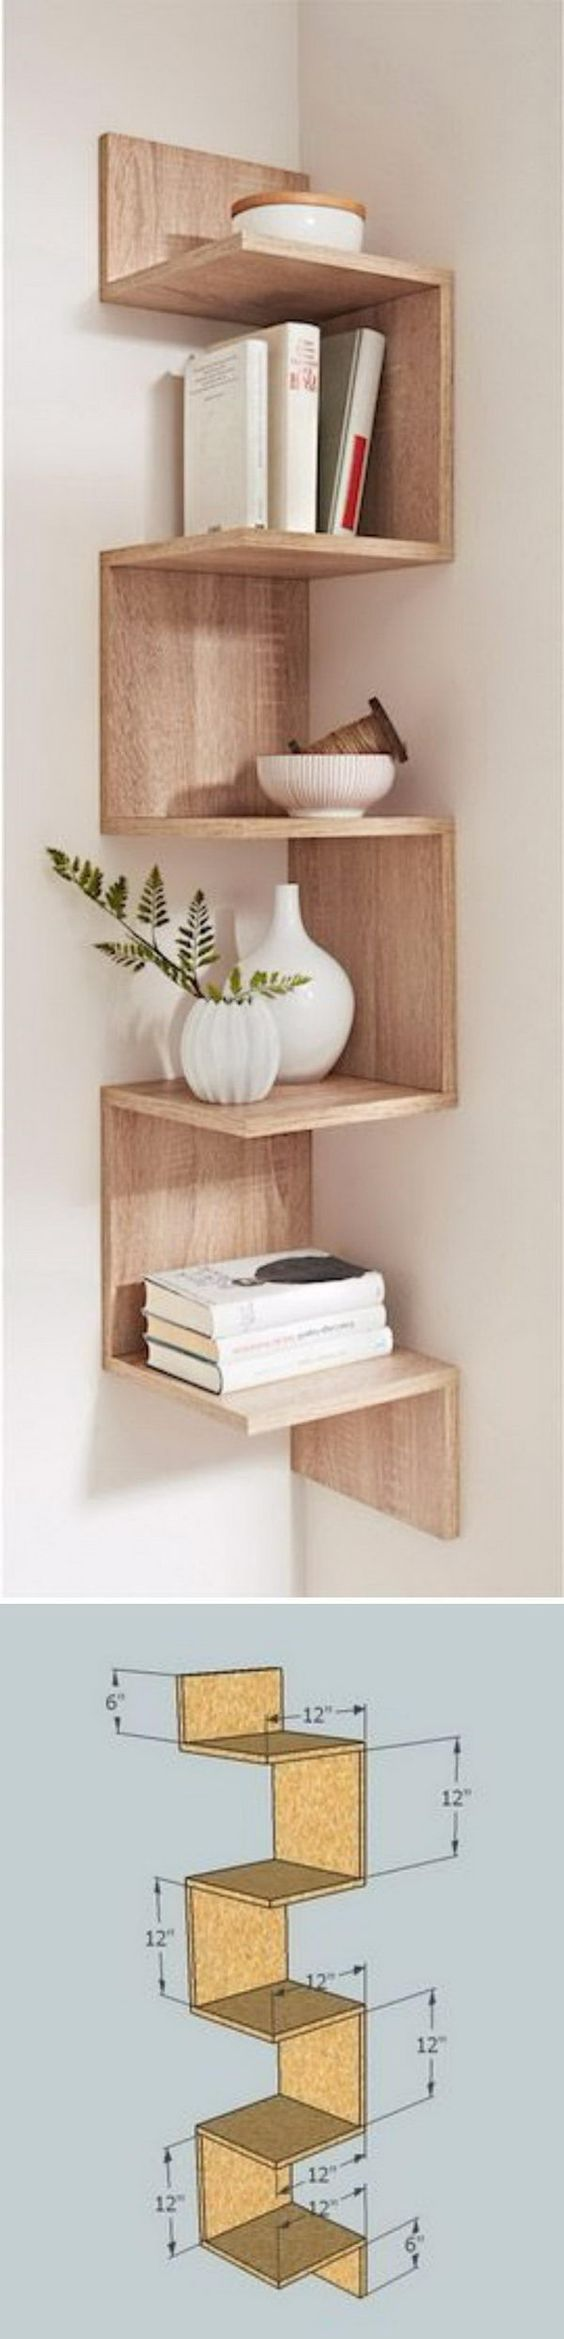 Best 25+ Diy corner shelf ideas on Pinterest | Corner shelf, Corner shelf  design and Corner shelves